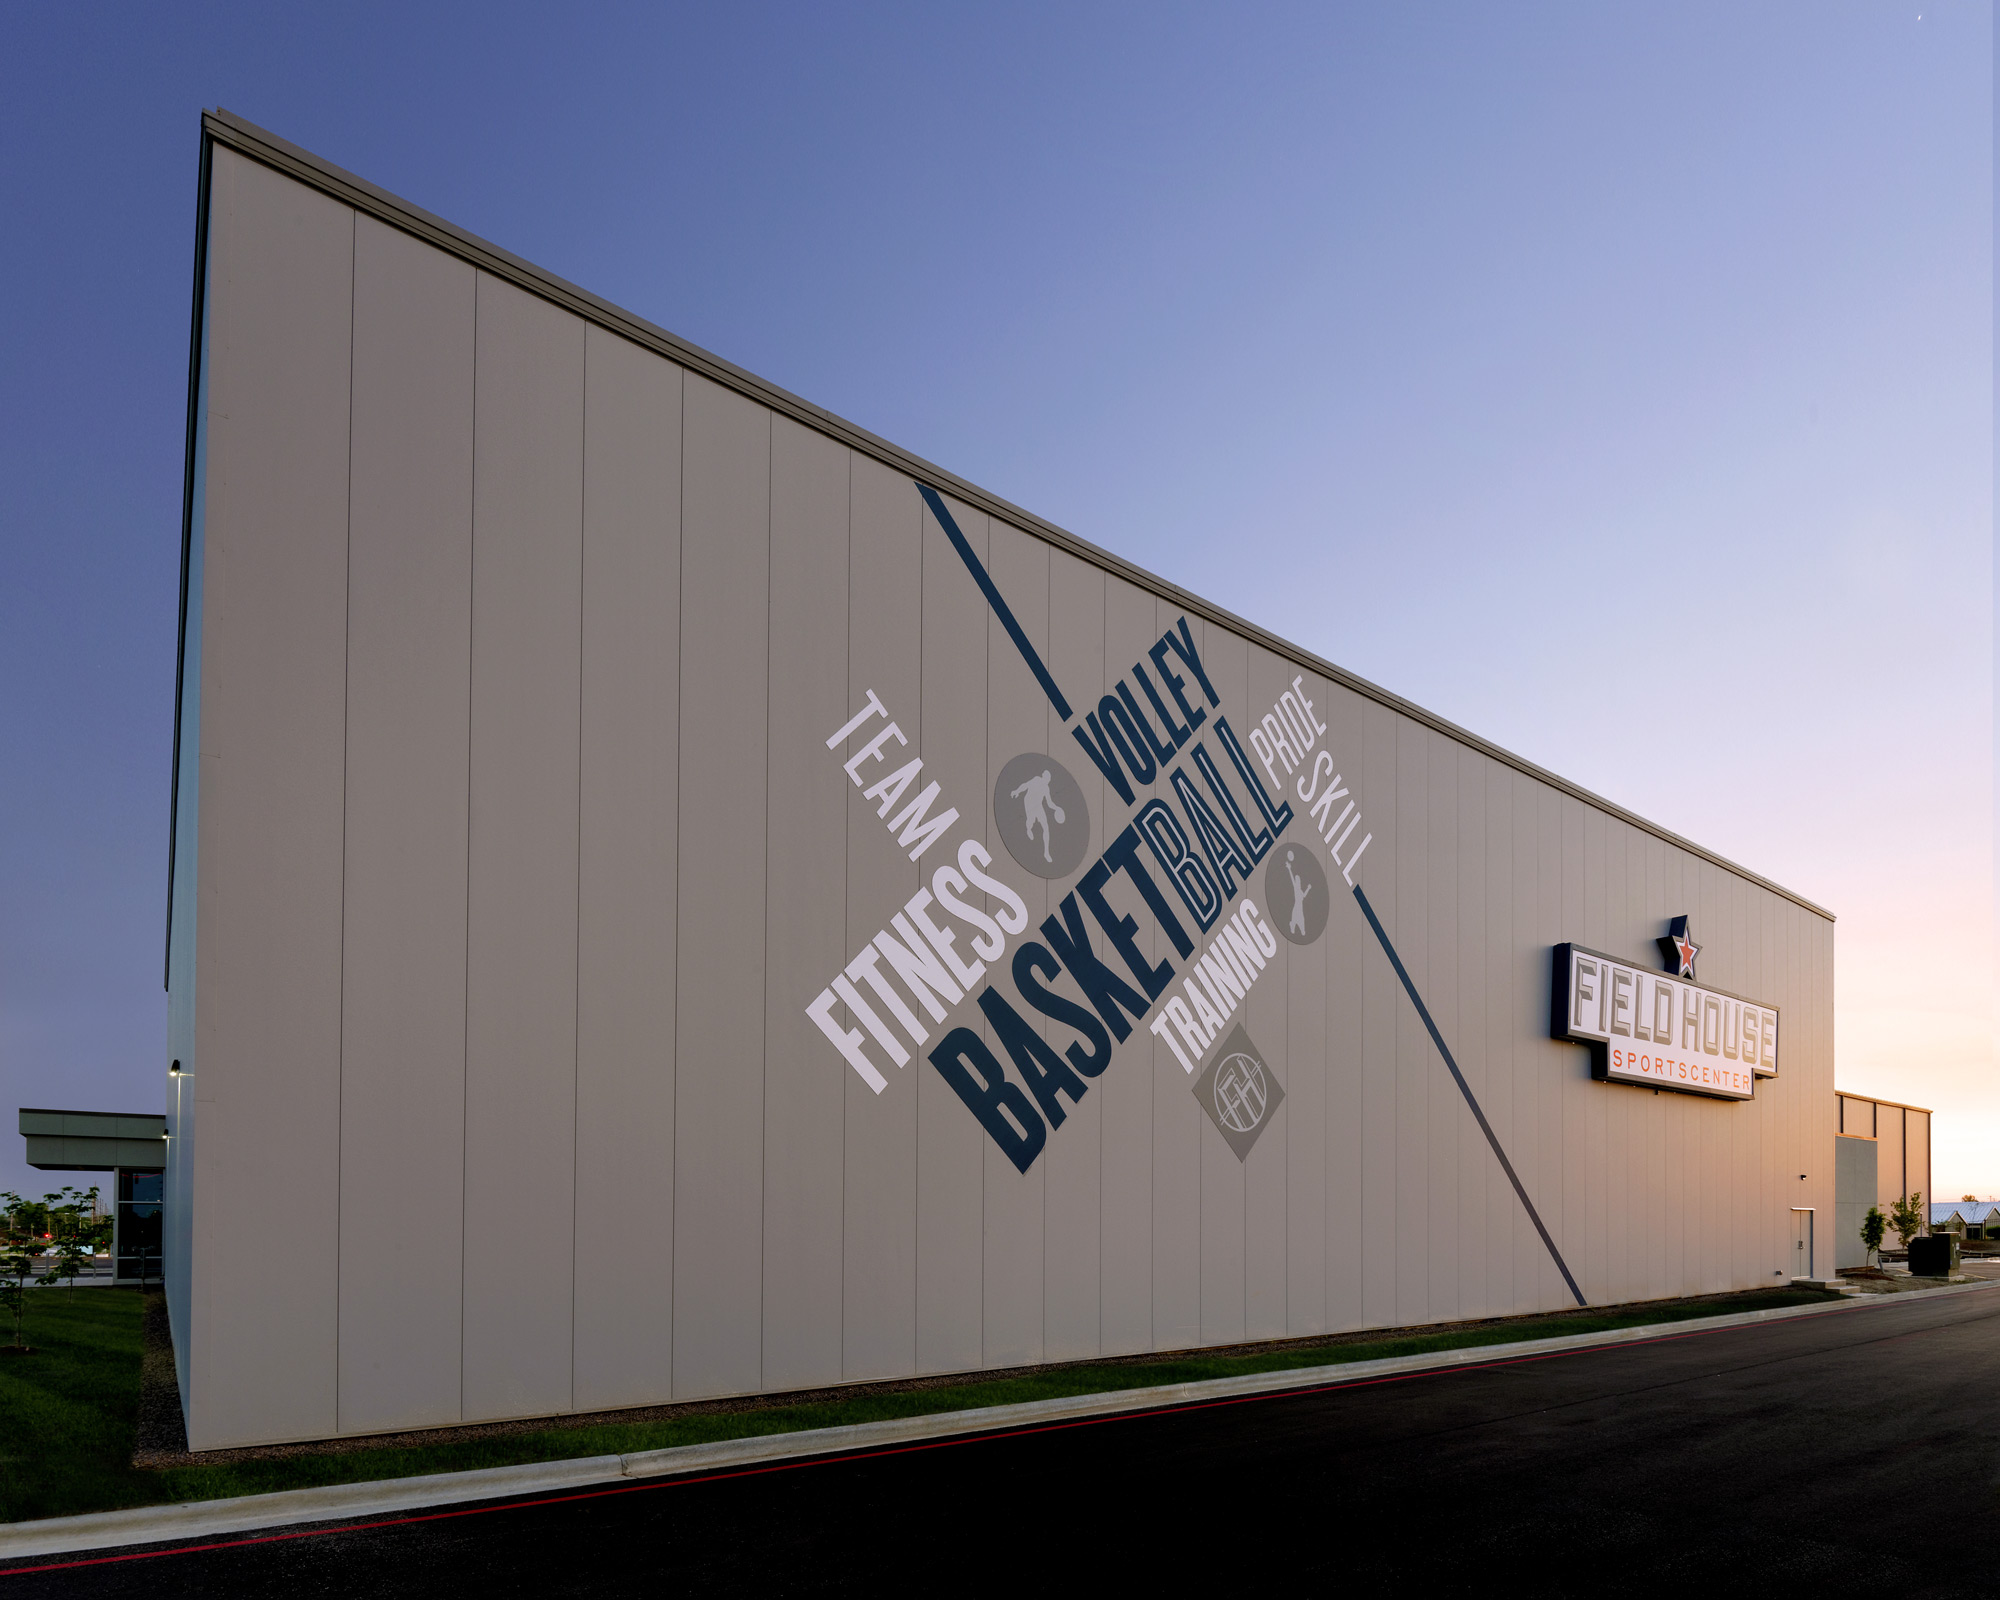 Fieldhouse-Sportscenter-H-Design-Exterior-05.jpg